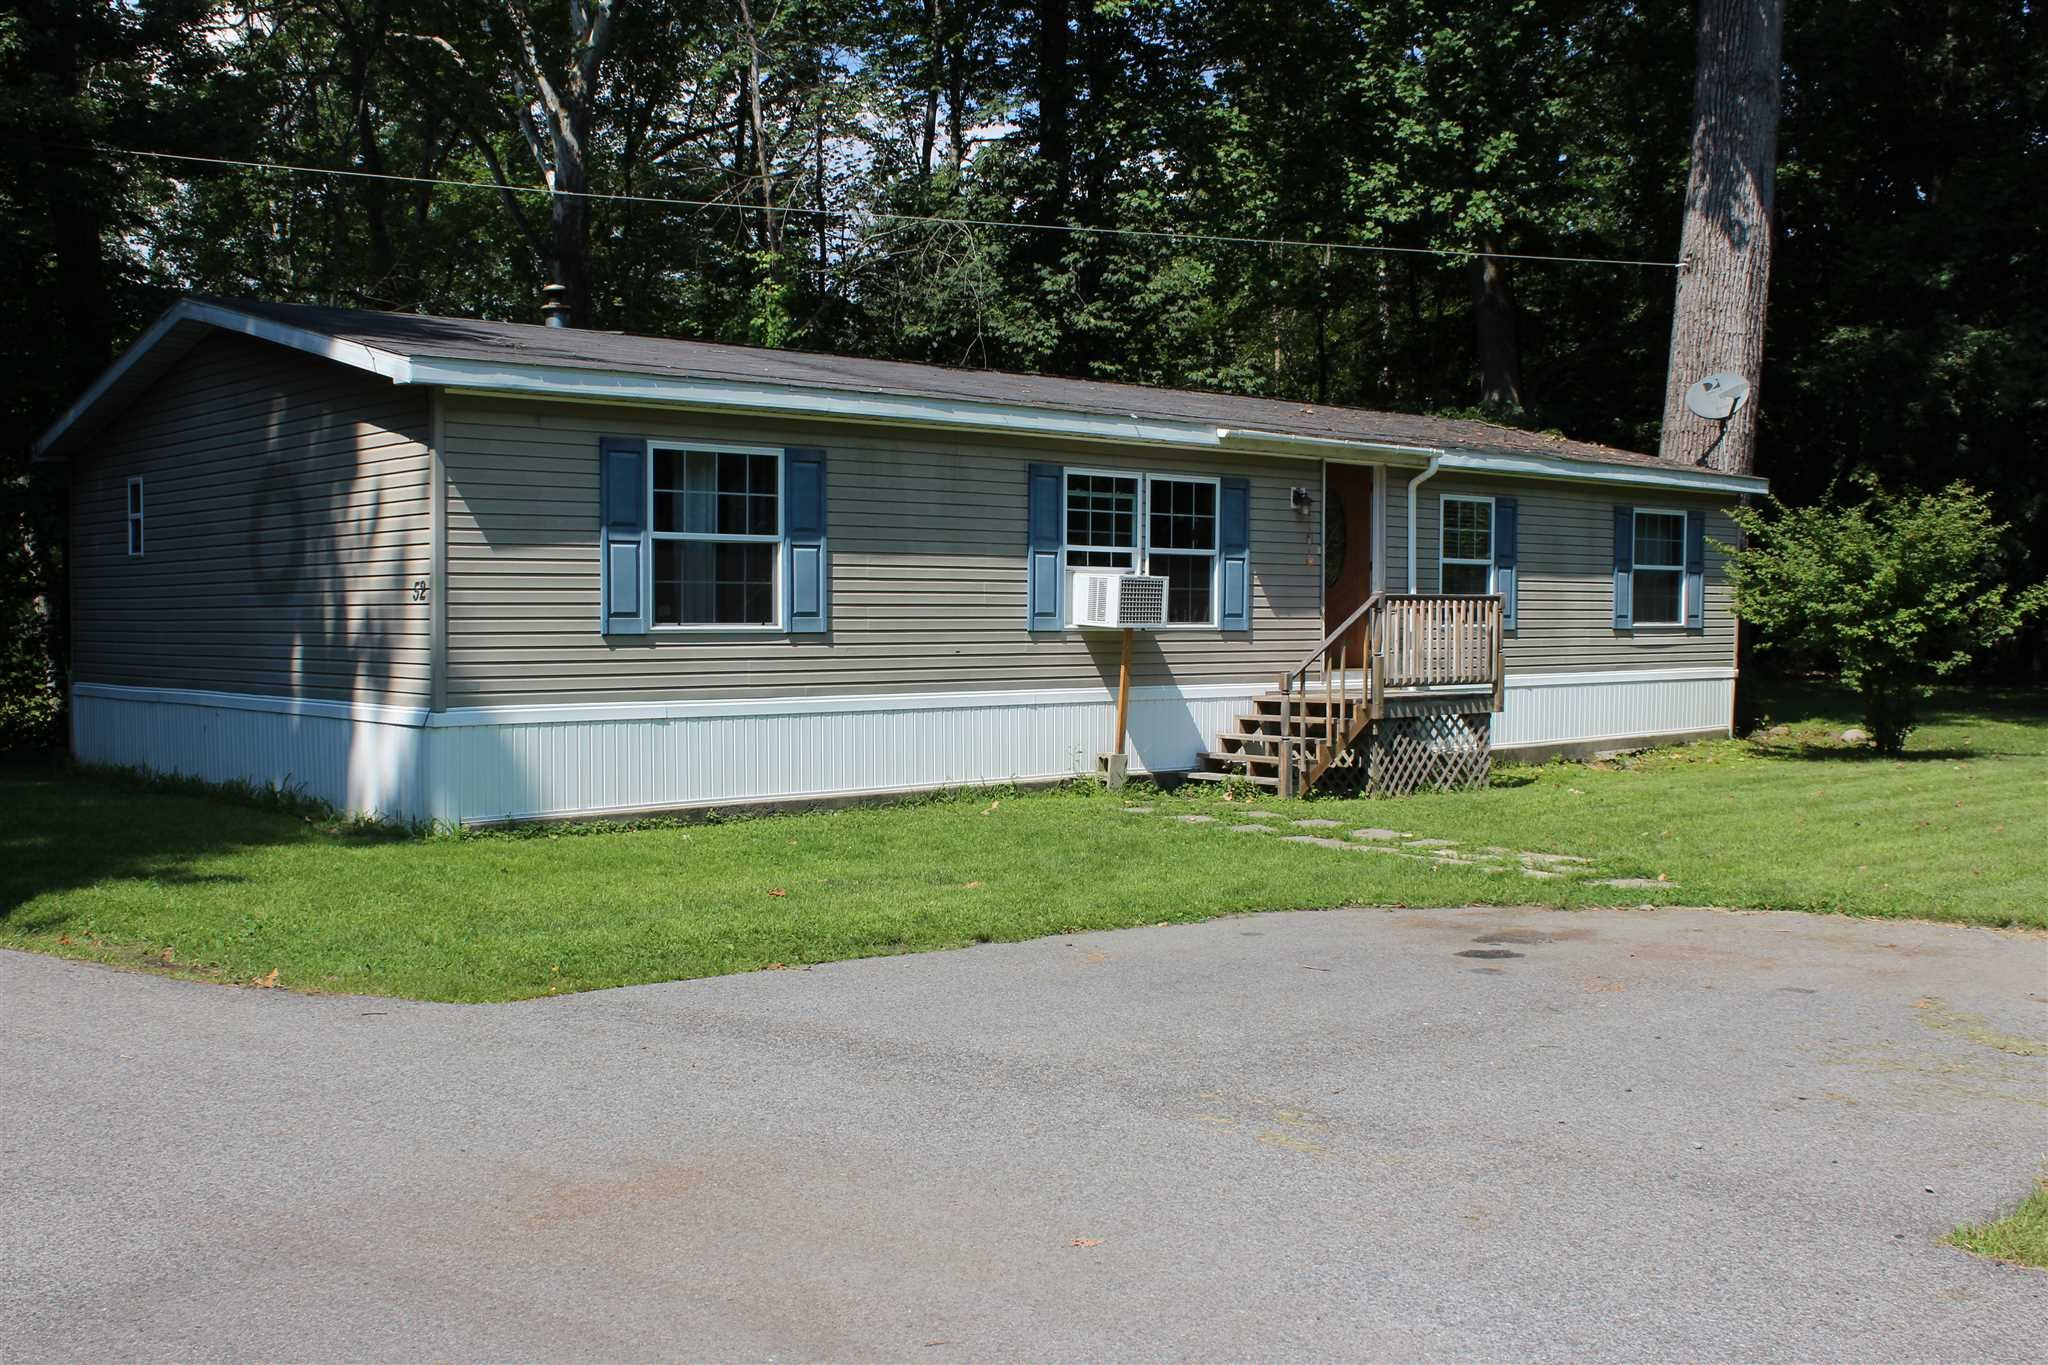 Single Family Home for Sale at 2898 ROUTE 9W #52 2898 ROUTE 9W #52 New Windsor, New York 12553 United States